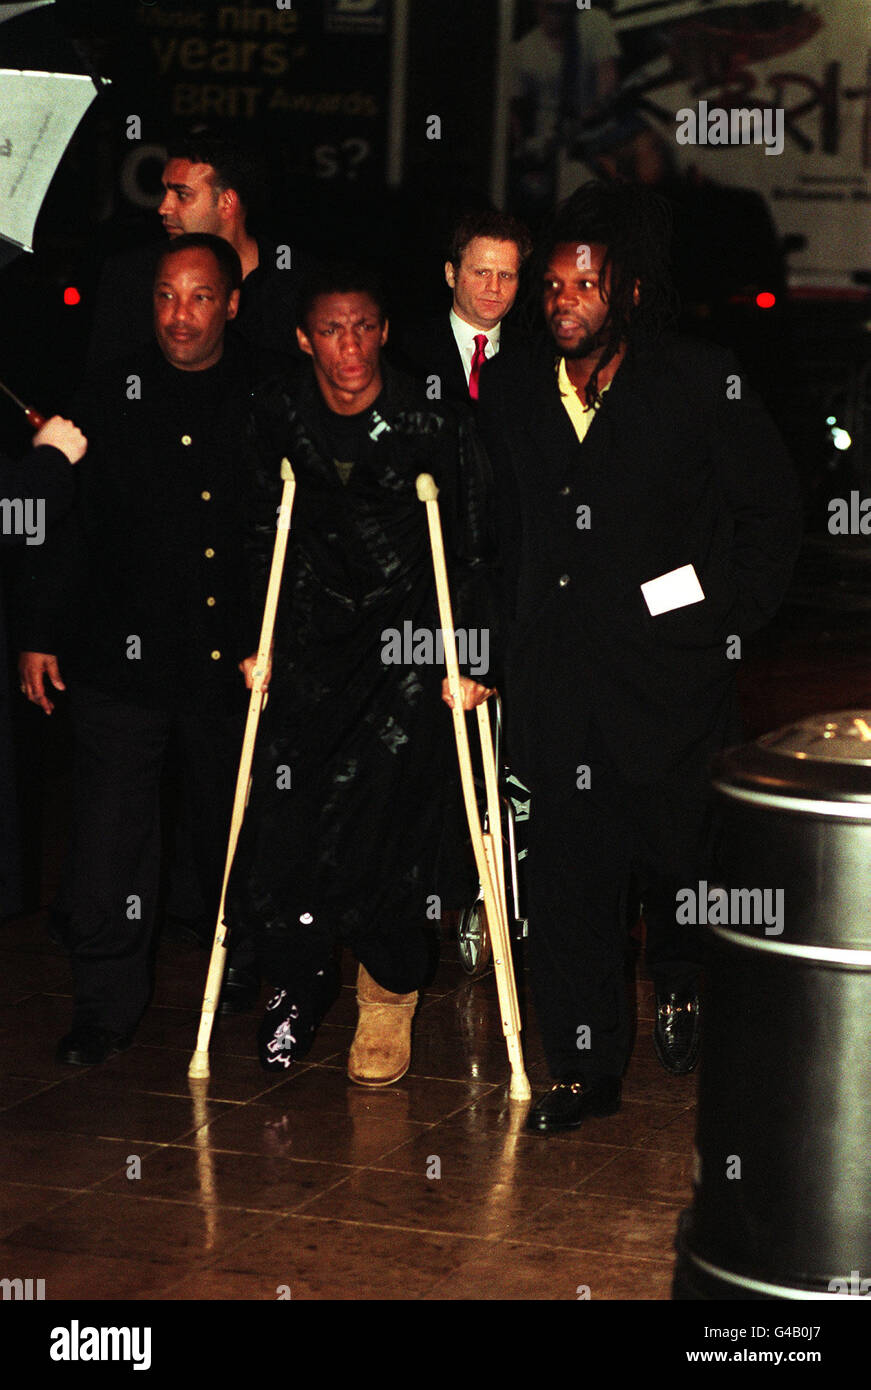 PA NEWS PHOTO 24/2/97  TRICKY AND JAZZY B ARRIVE AT THE BRIT AWARDS IN LONDON - Stock Image